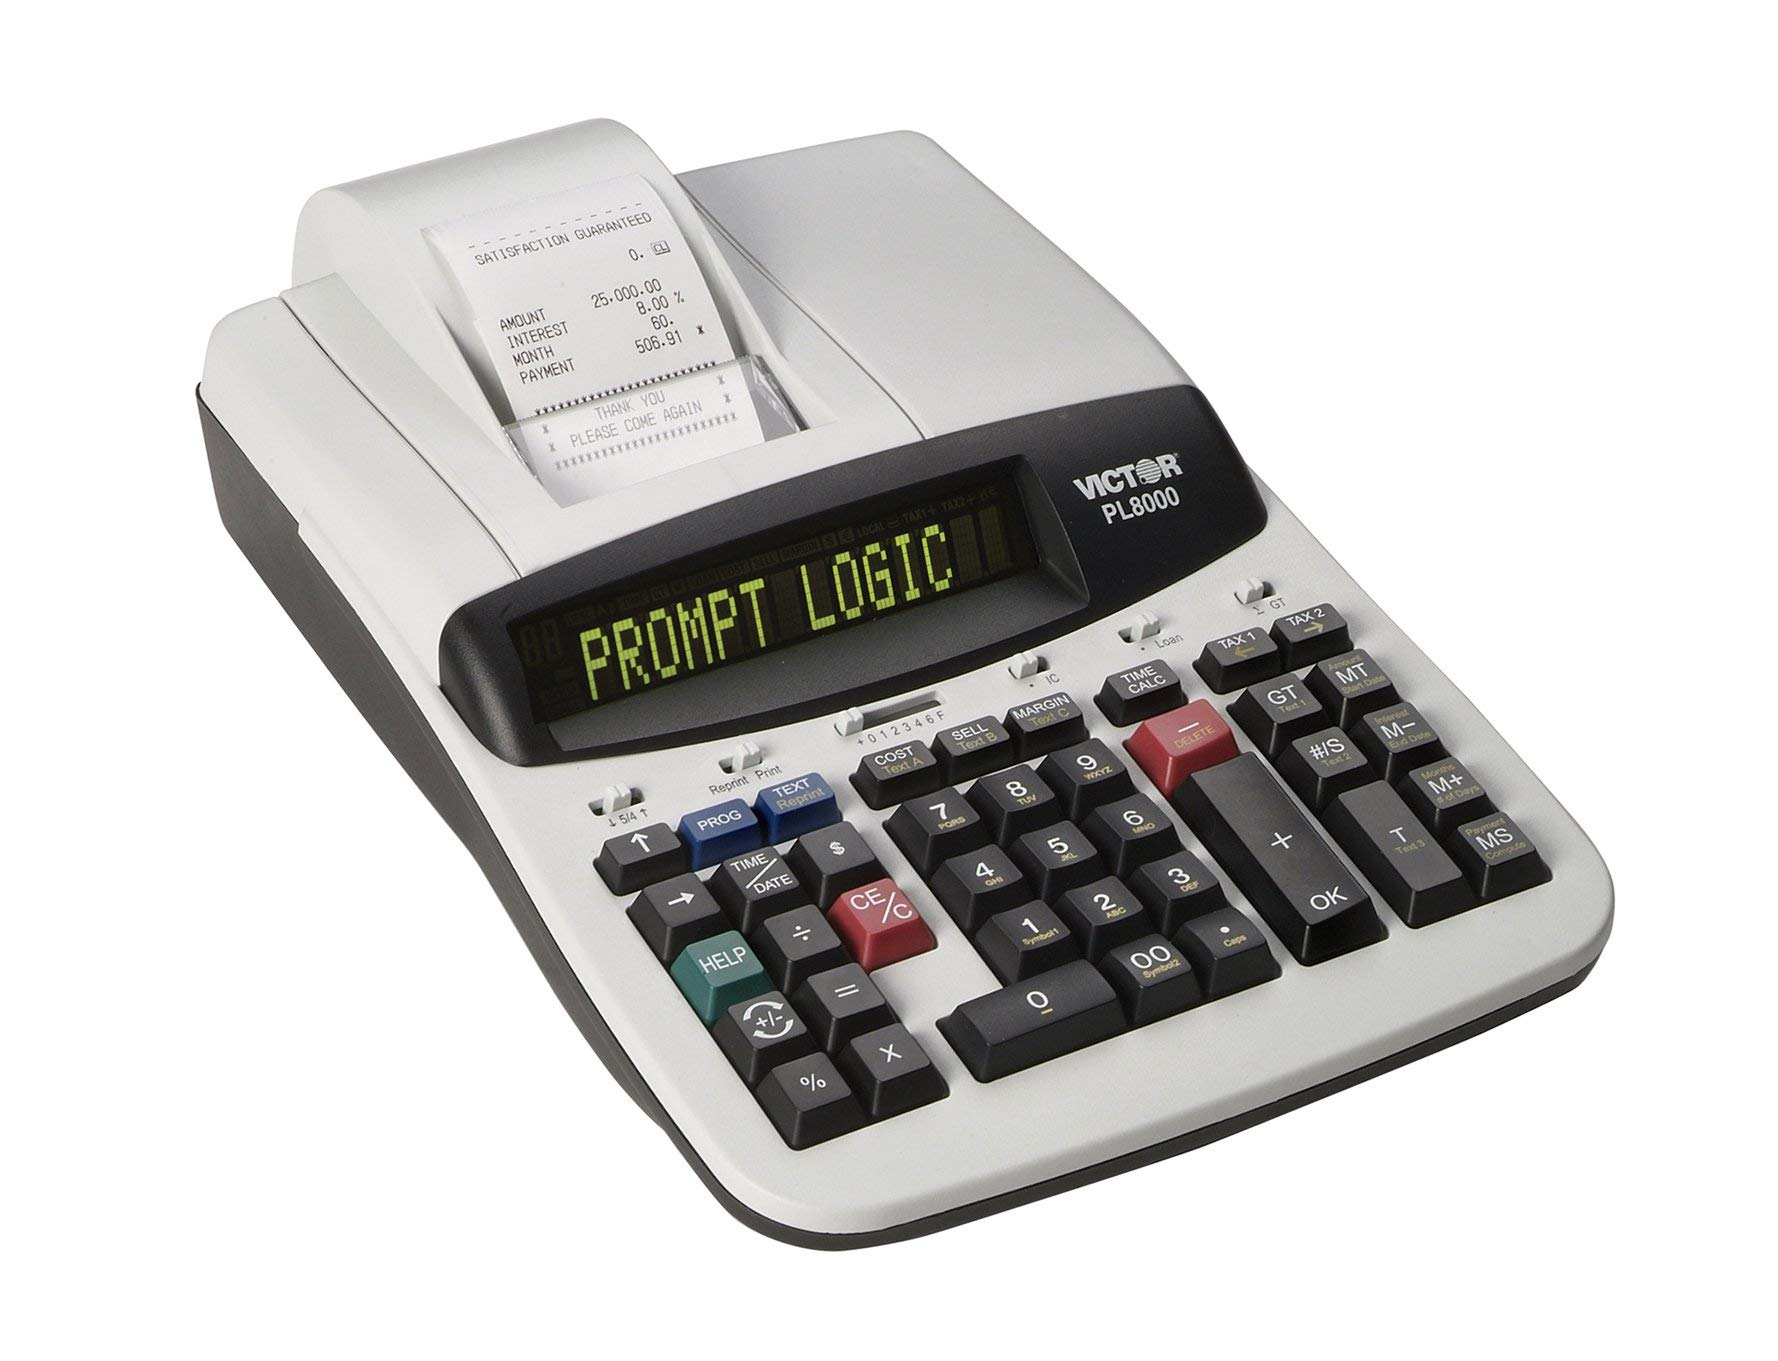 Victor Technology PL8000 Thermal Printing Calculator, Prompt Logic, Help Key, 8.0 Lines Per Second (Renewed) by Victor